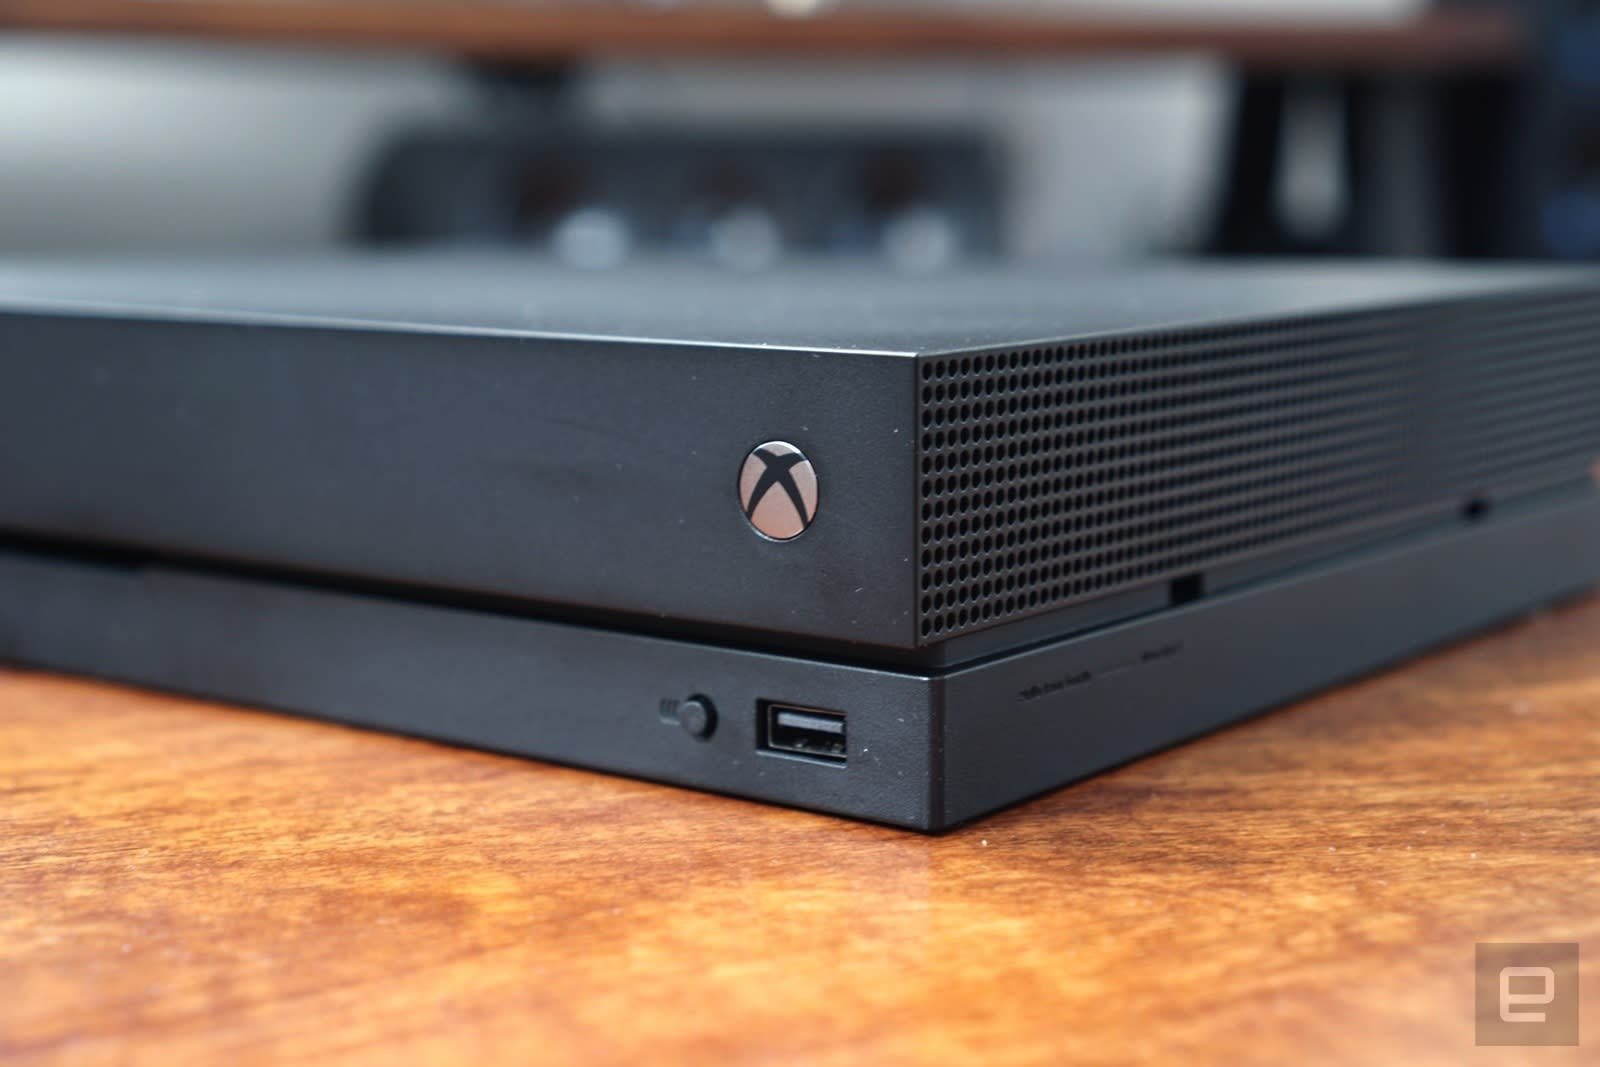 xbox one games with keyboard and mouse support